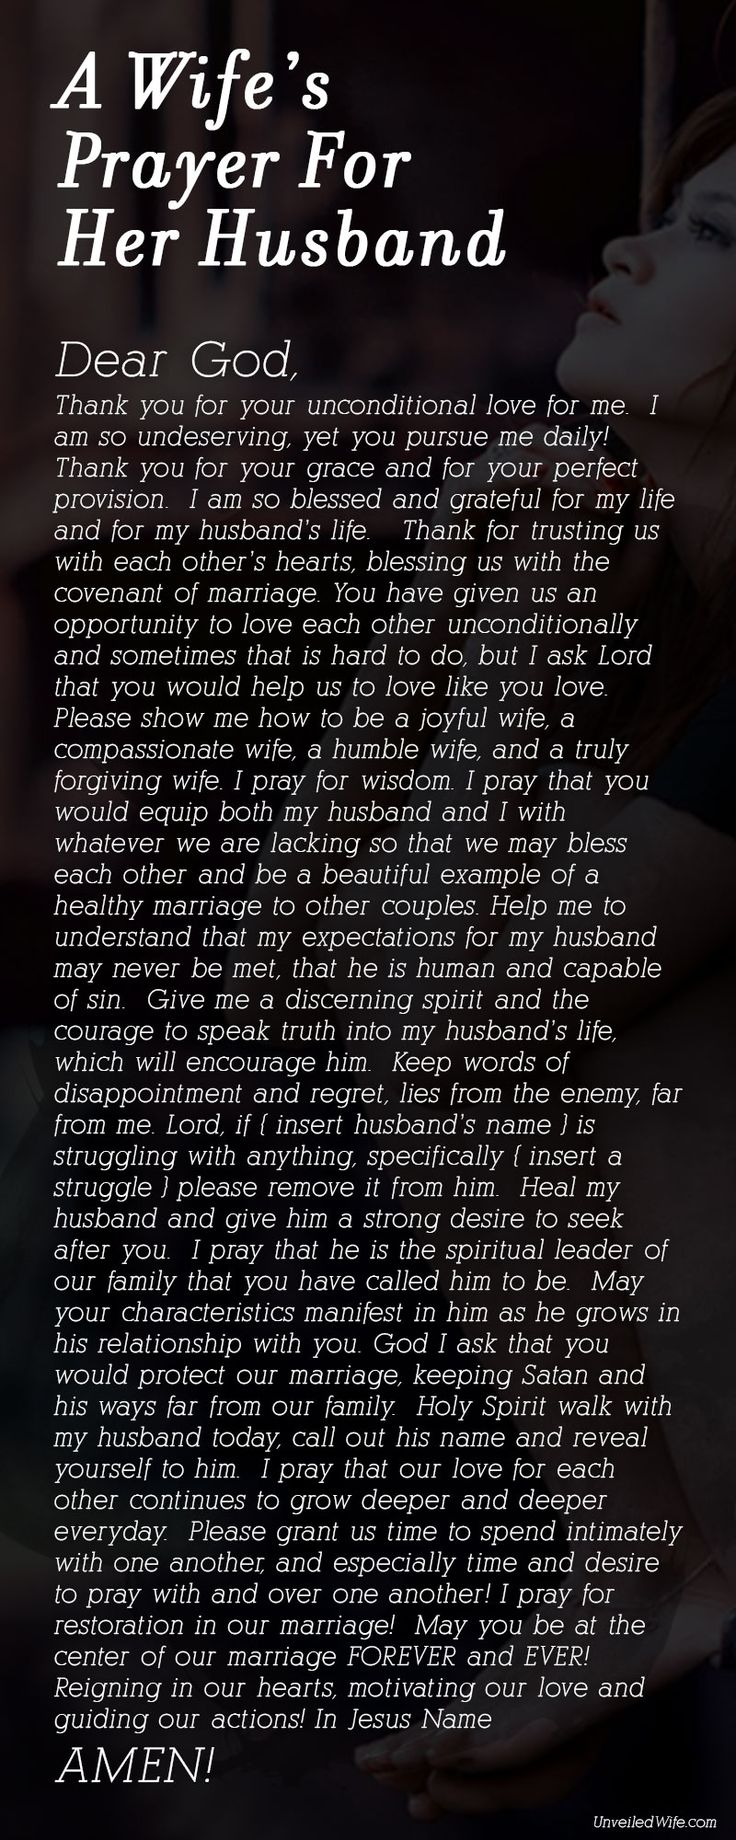 A Wife's Prayer For Her Husband.